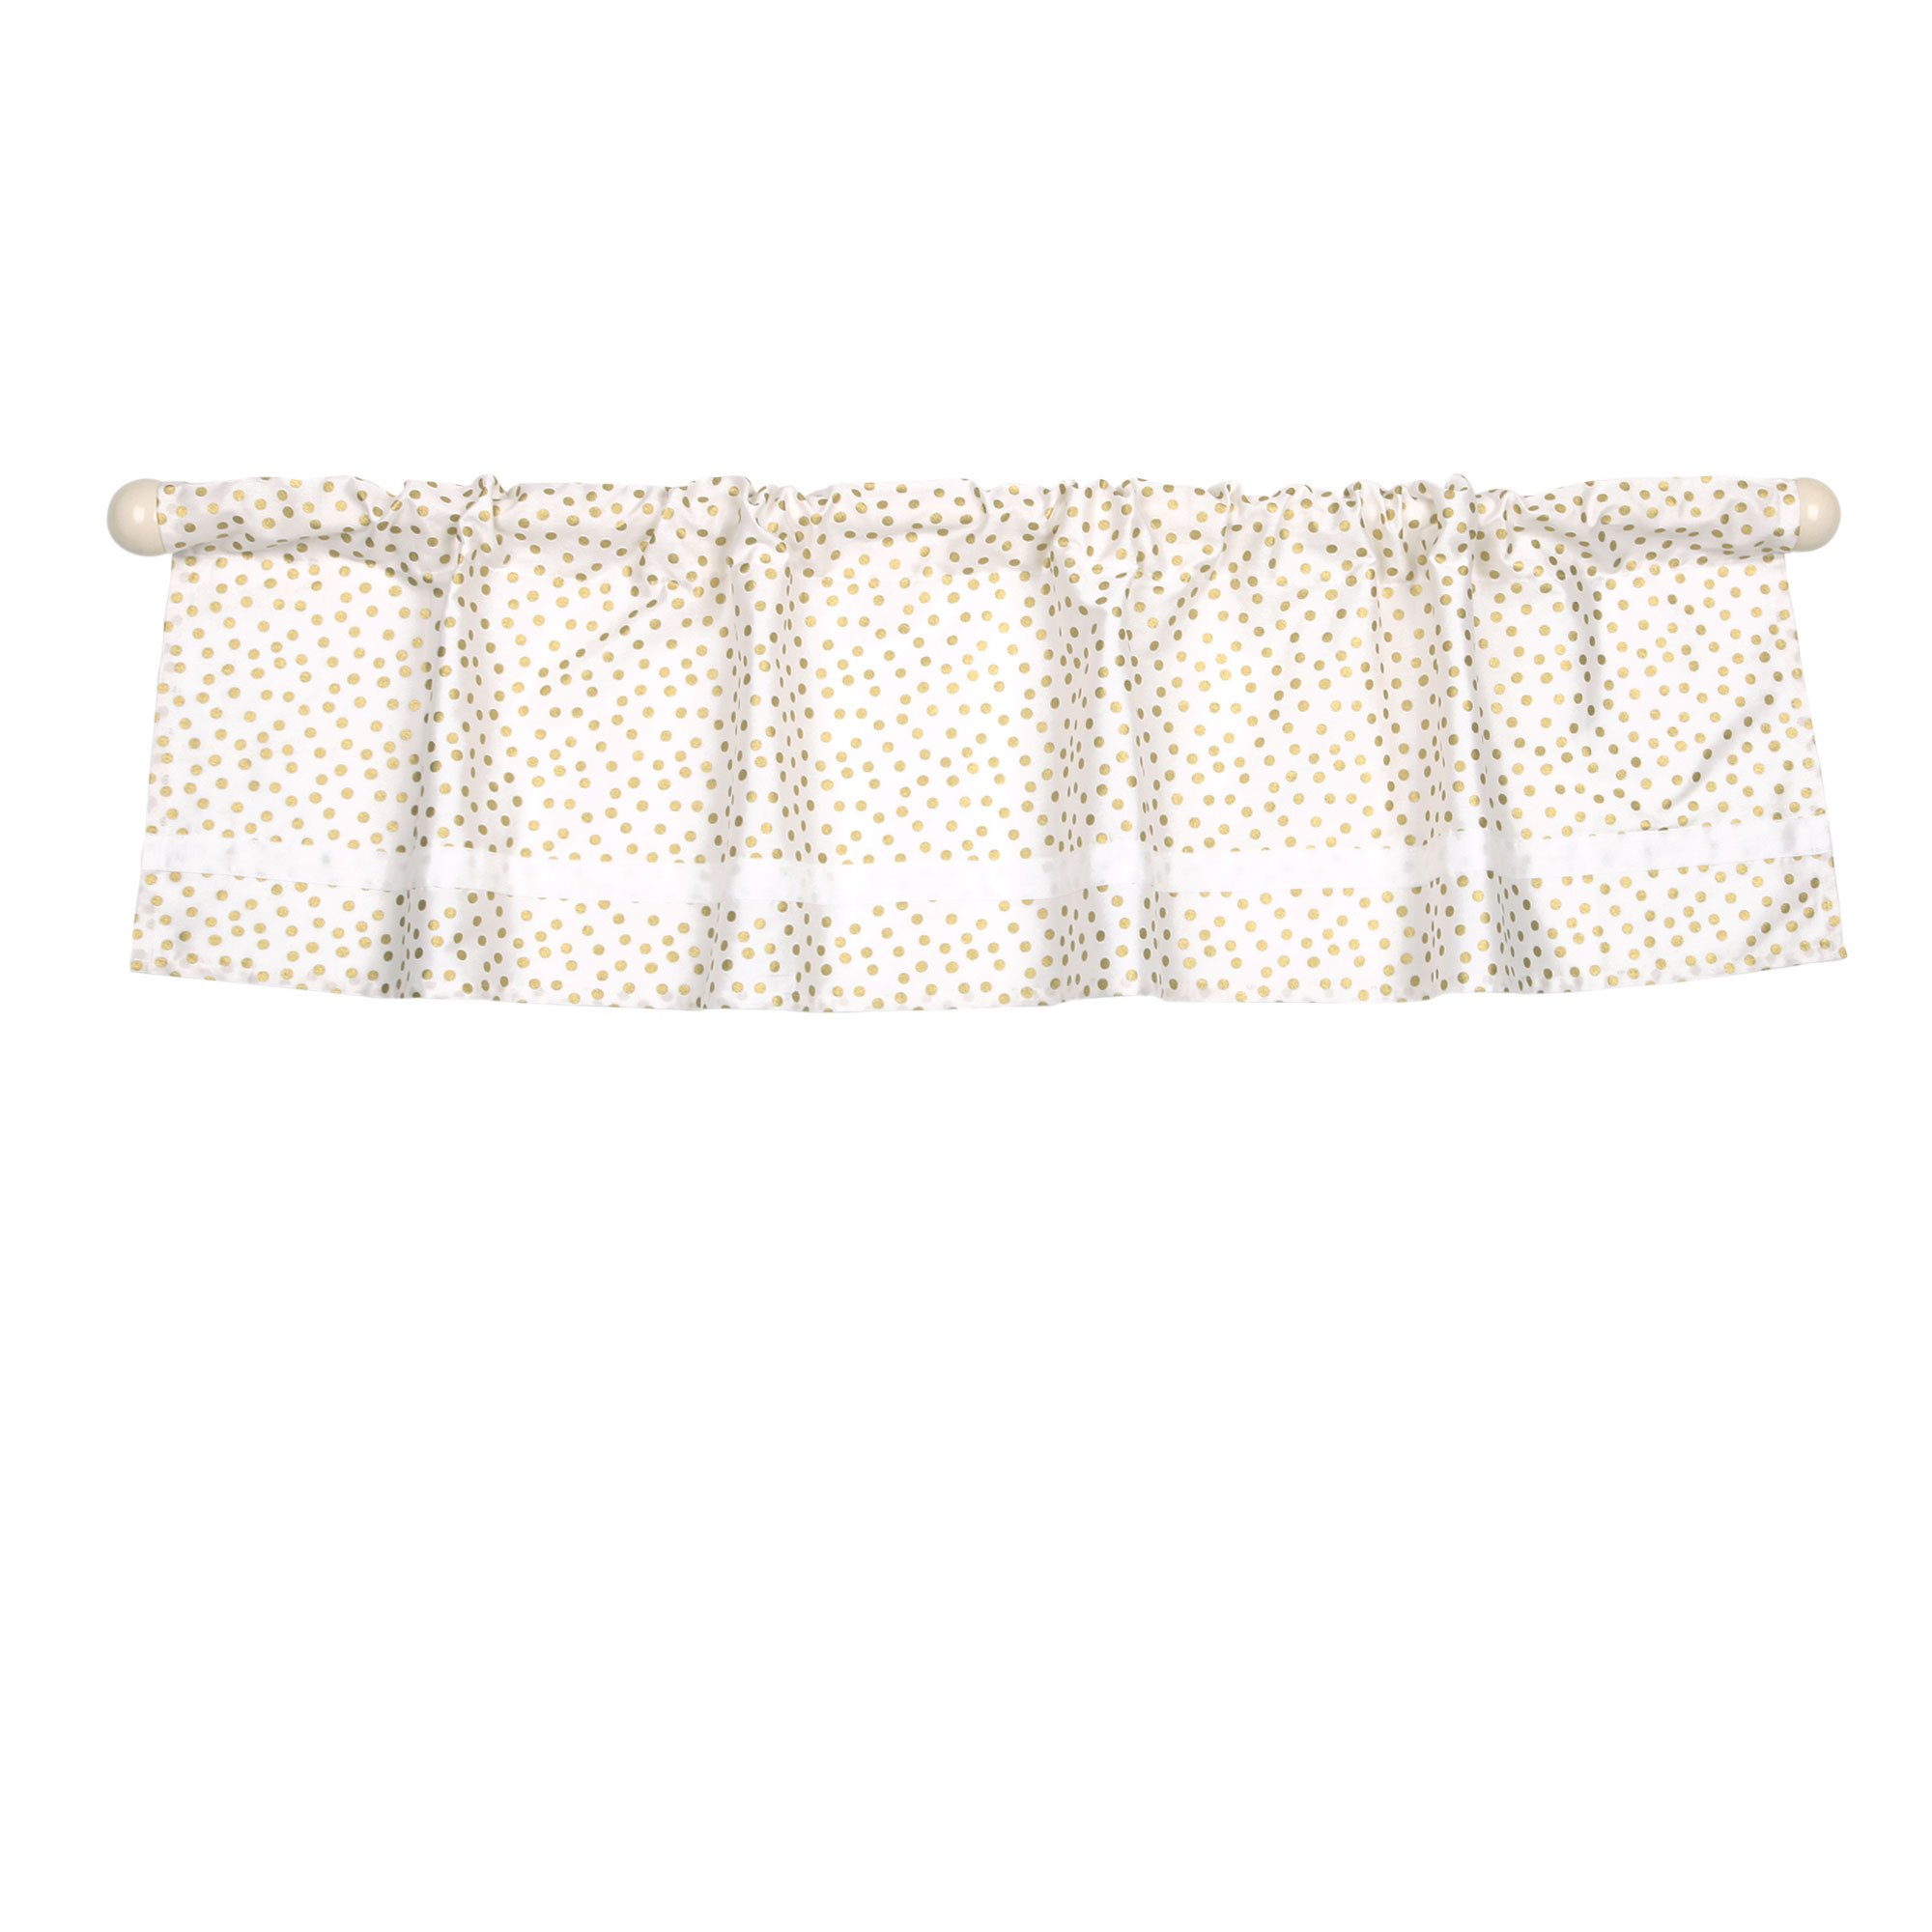 Gold Confetti Dot Print Window Valance by The Peanut Shell - 100% Cotton Sateen by The Peanut Shell